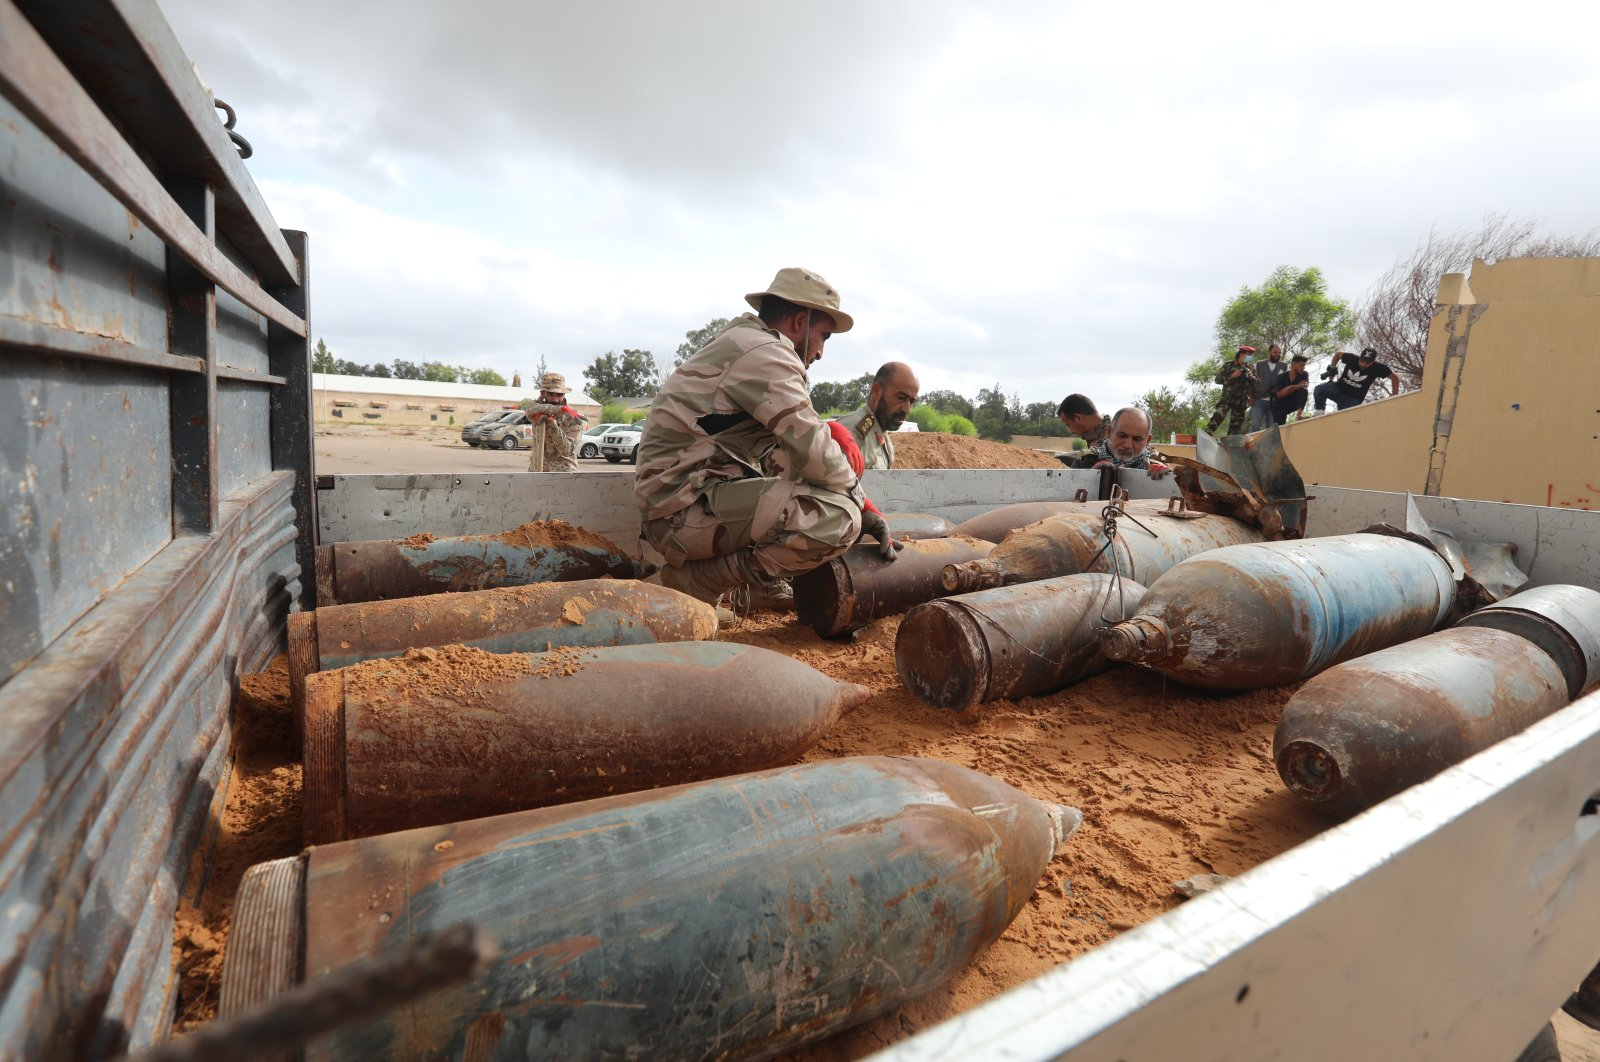 The Libyan military clears improvised explosive devices (IEDs) planted by forces loyal to the putschist Gen. Khalifa Haftar in Al-Hira military area near the capital Tripoli on Oct. 13, 2020 (AA File Photo)